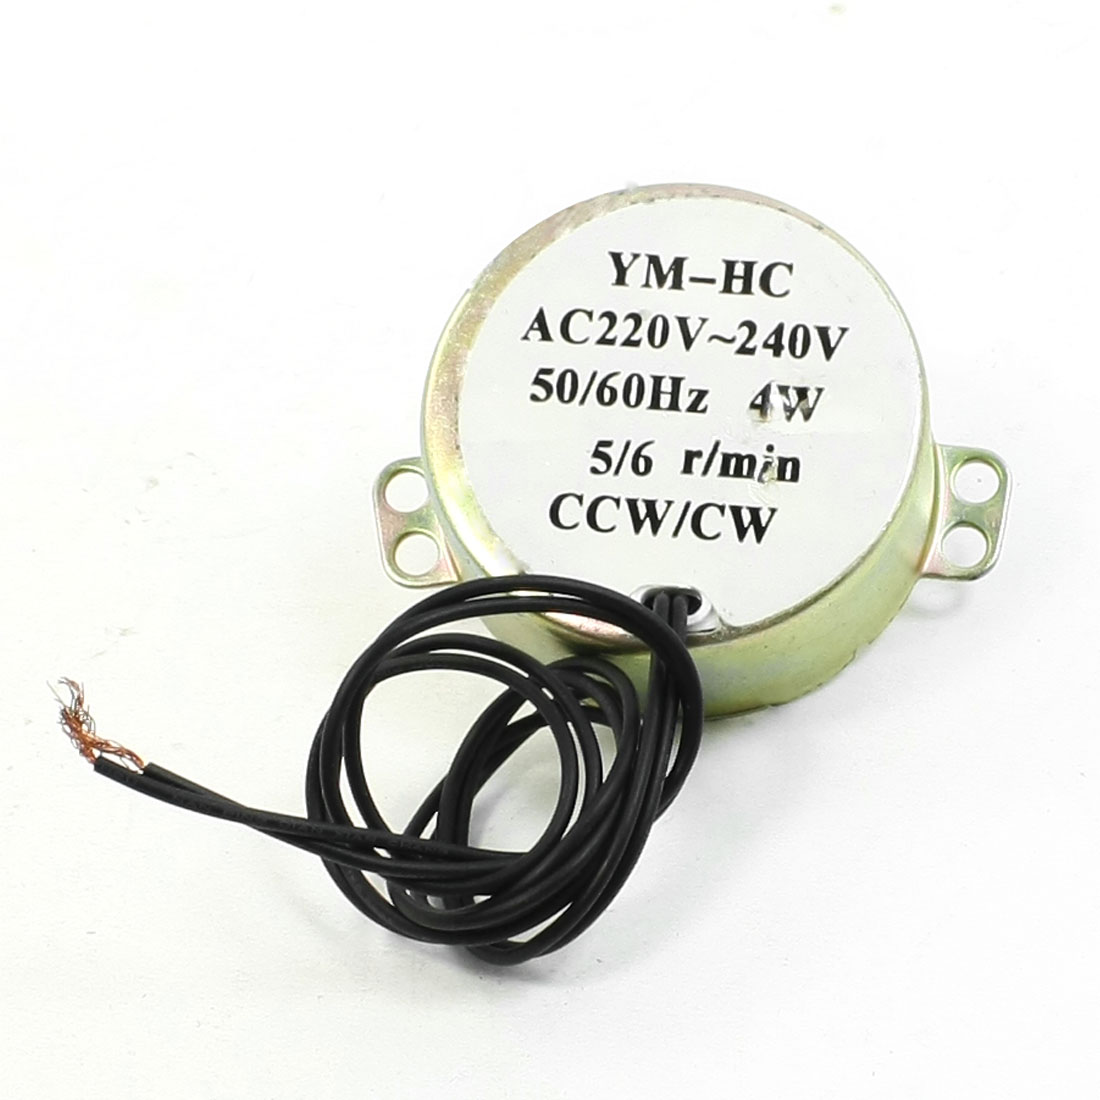 AC220V-240V 50/60Hz 4W 5/6 r/min Microwave Oven Synchronous Motor